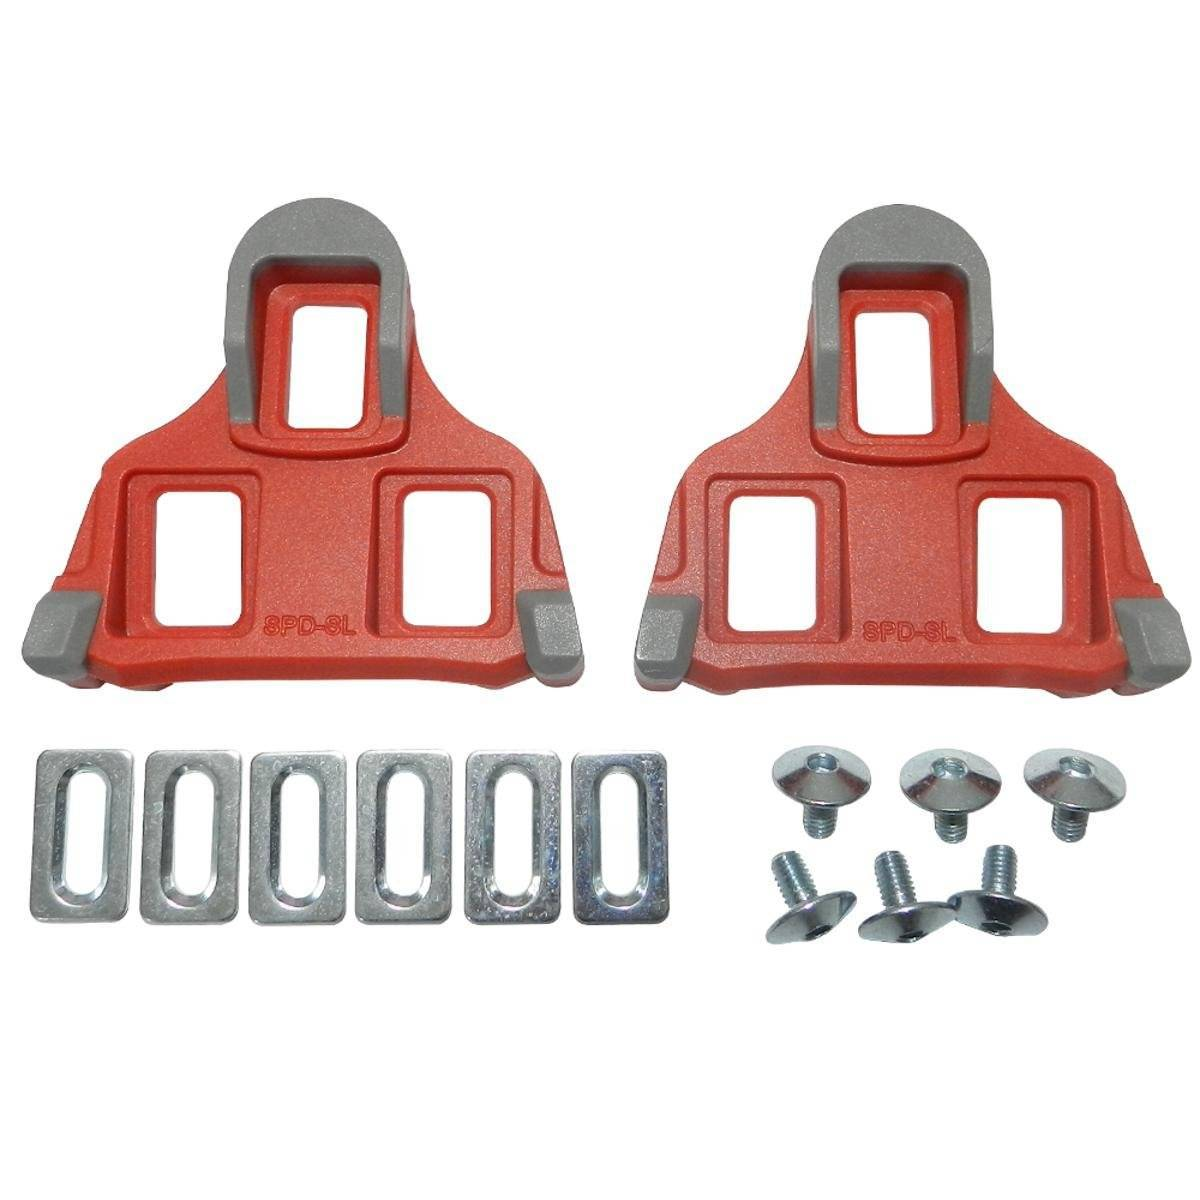 TACO PARA PEDAL SPEED WELLGO CLEAT 6º TIPO SHIMANO SPD-SL  - Cicles Jahn